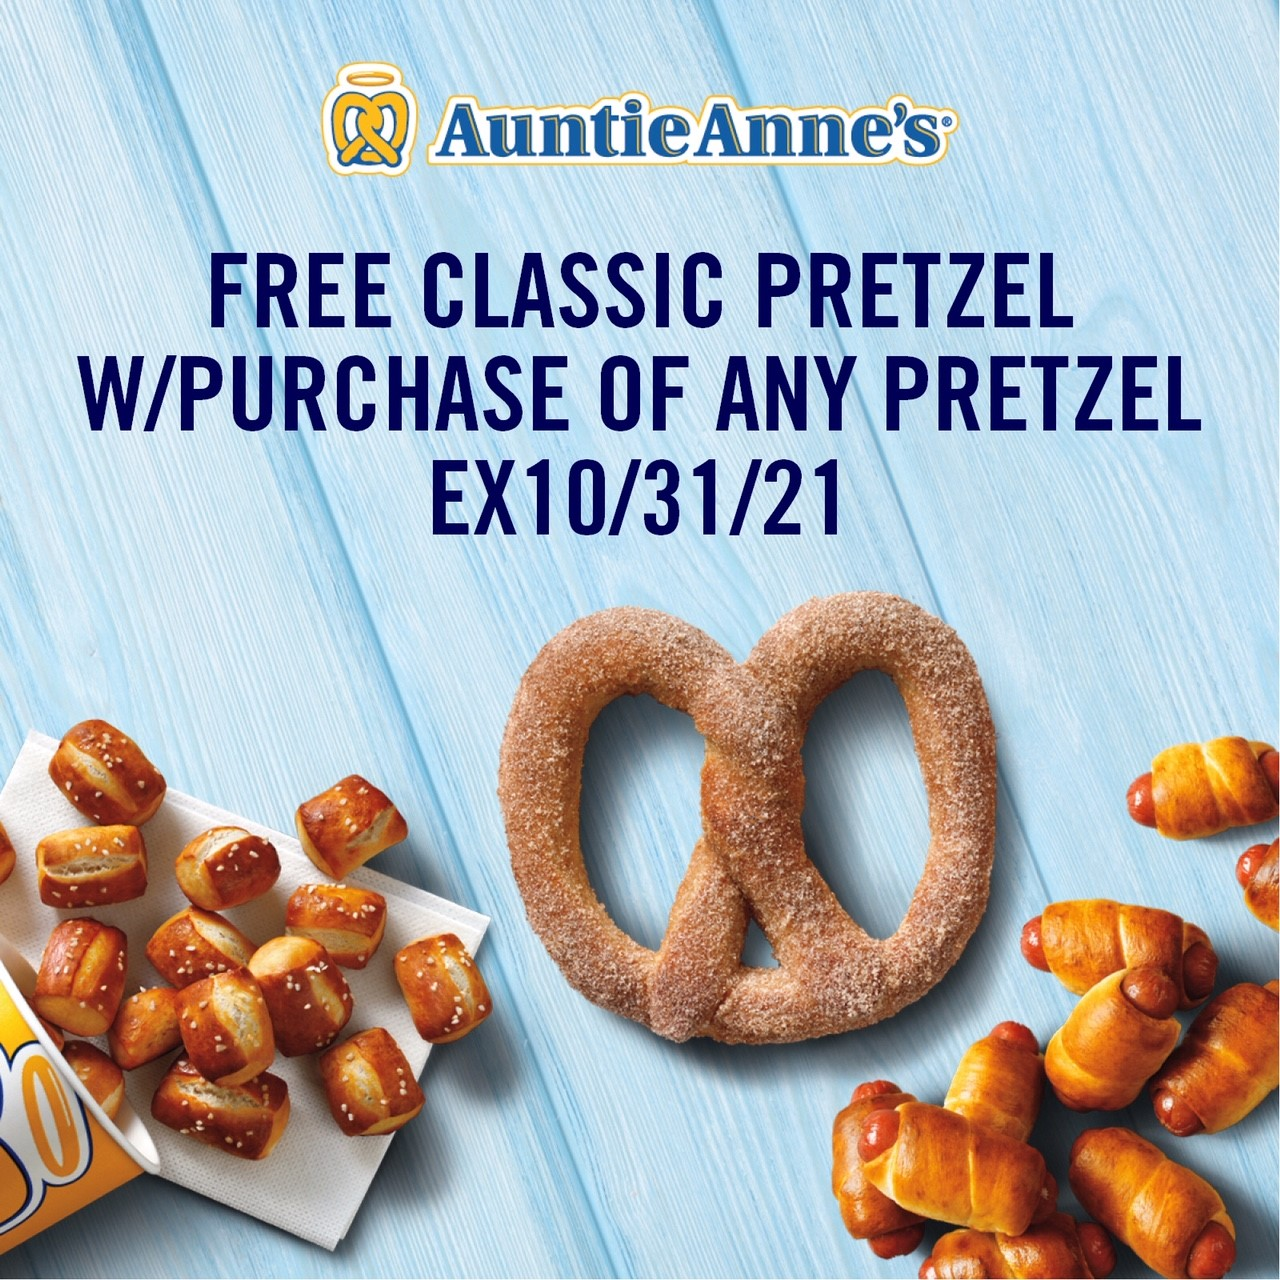 FREE Classic Pretzel! from Auntie Anne's